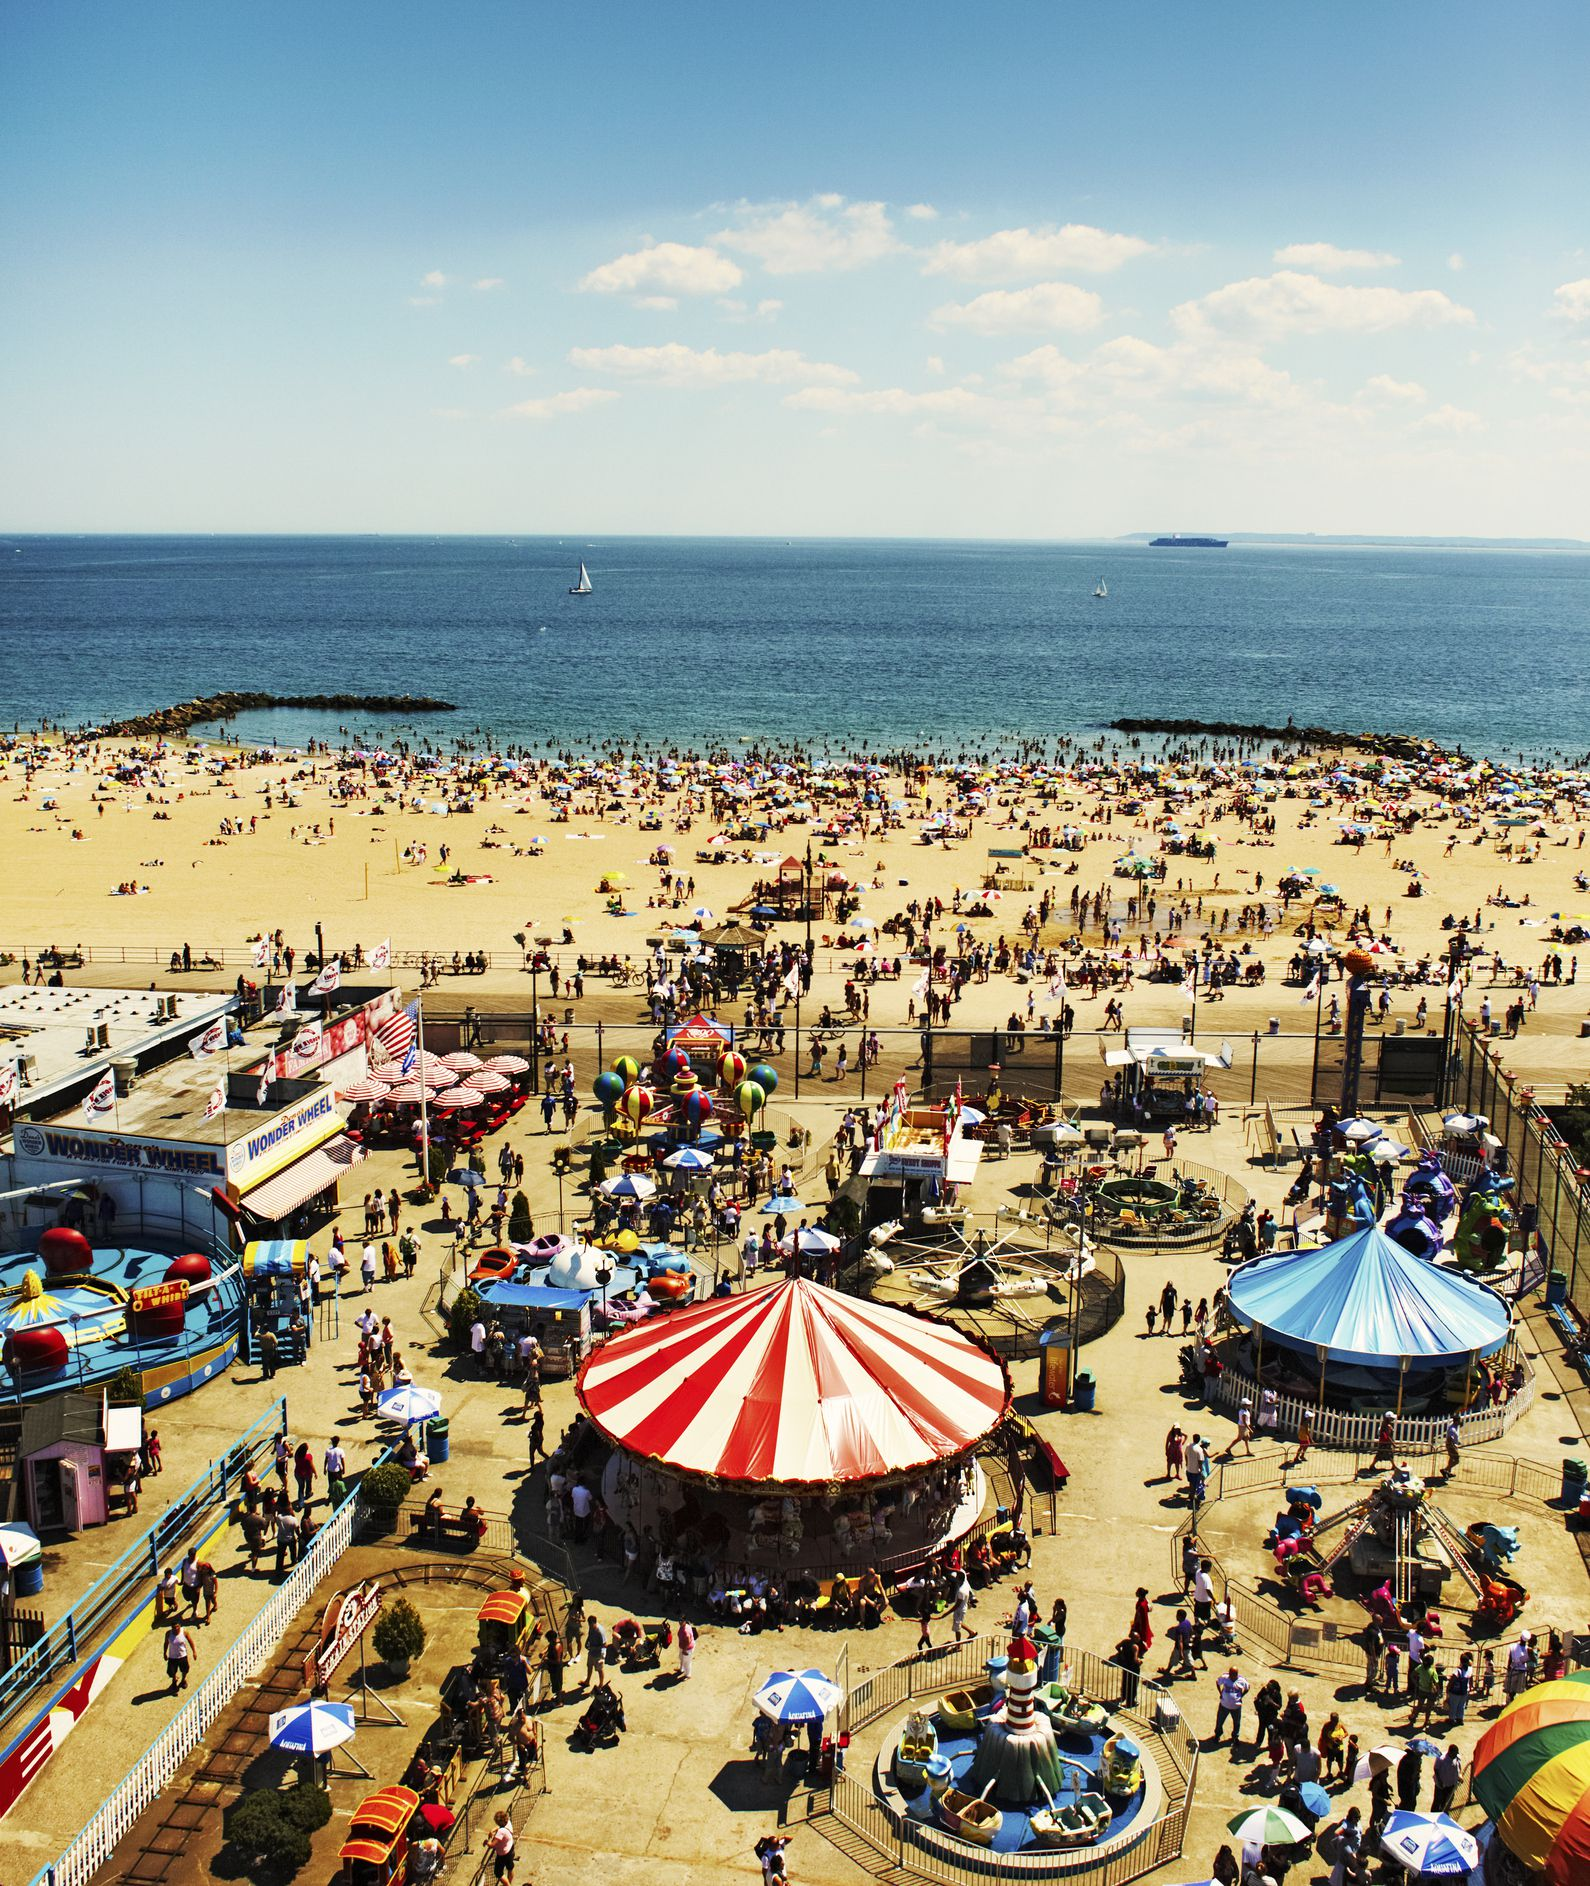 Beach Island: An Honest Word About The Public Beach At Coney Island